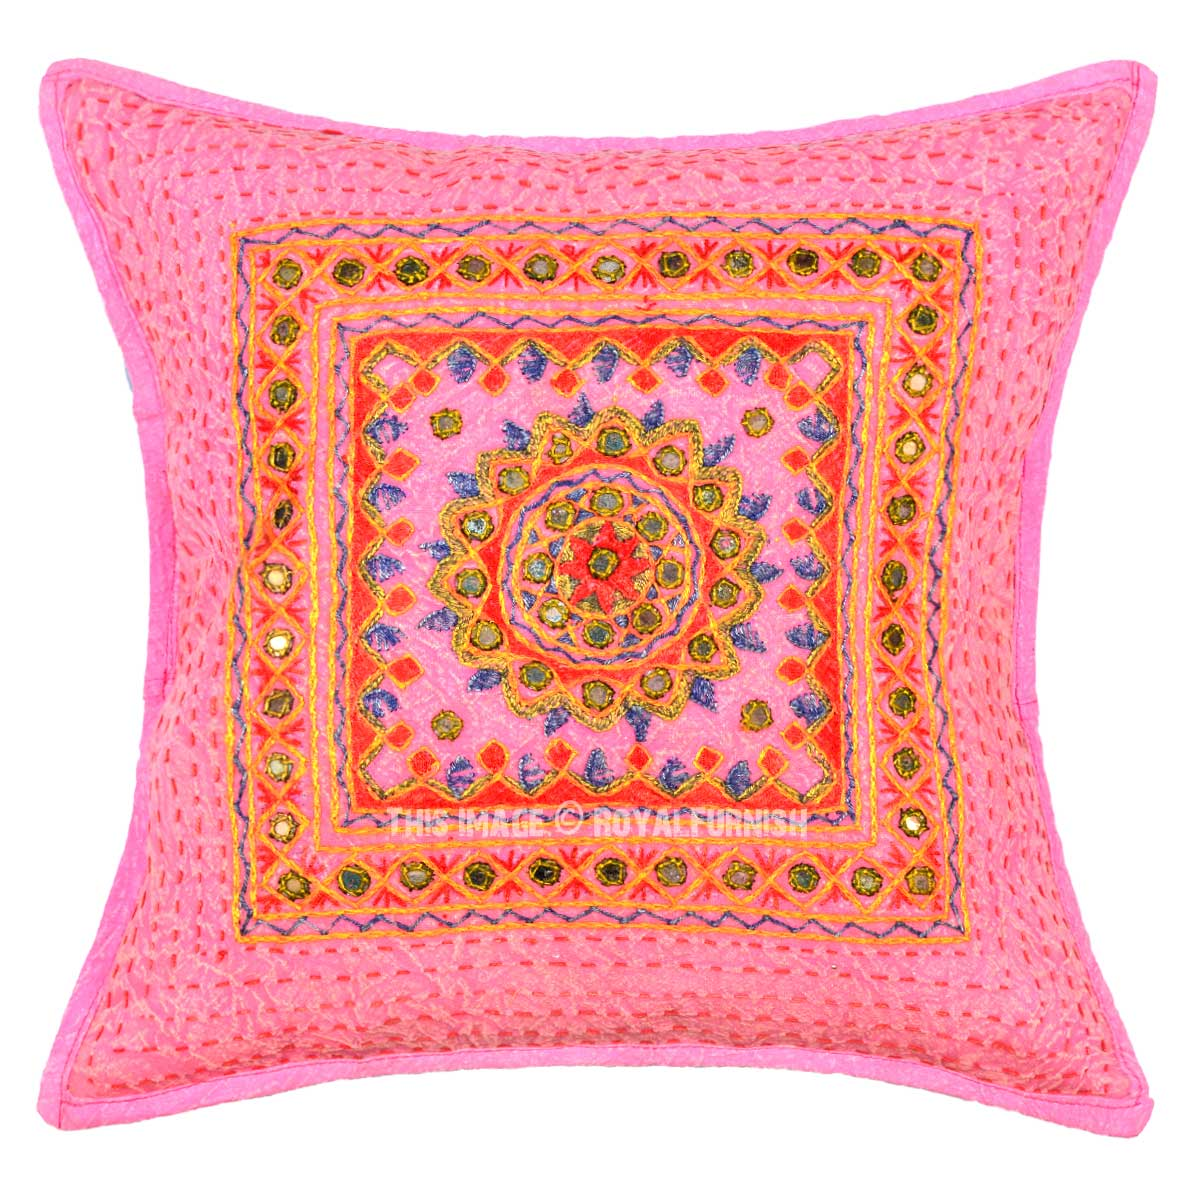 Pink Multi Kantha and Mirror Ethnic Work Decorative Throw Pillow Cover 16X16 - RoyalFurnish.com